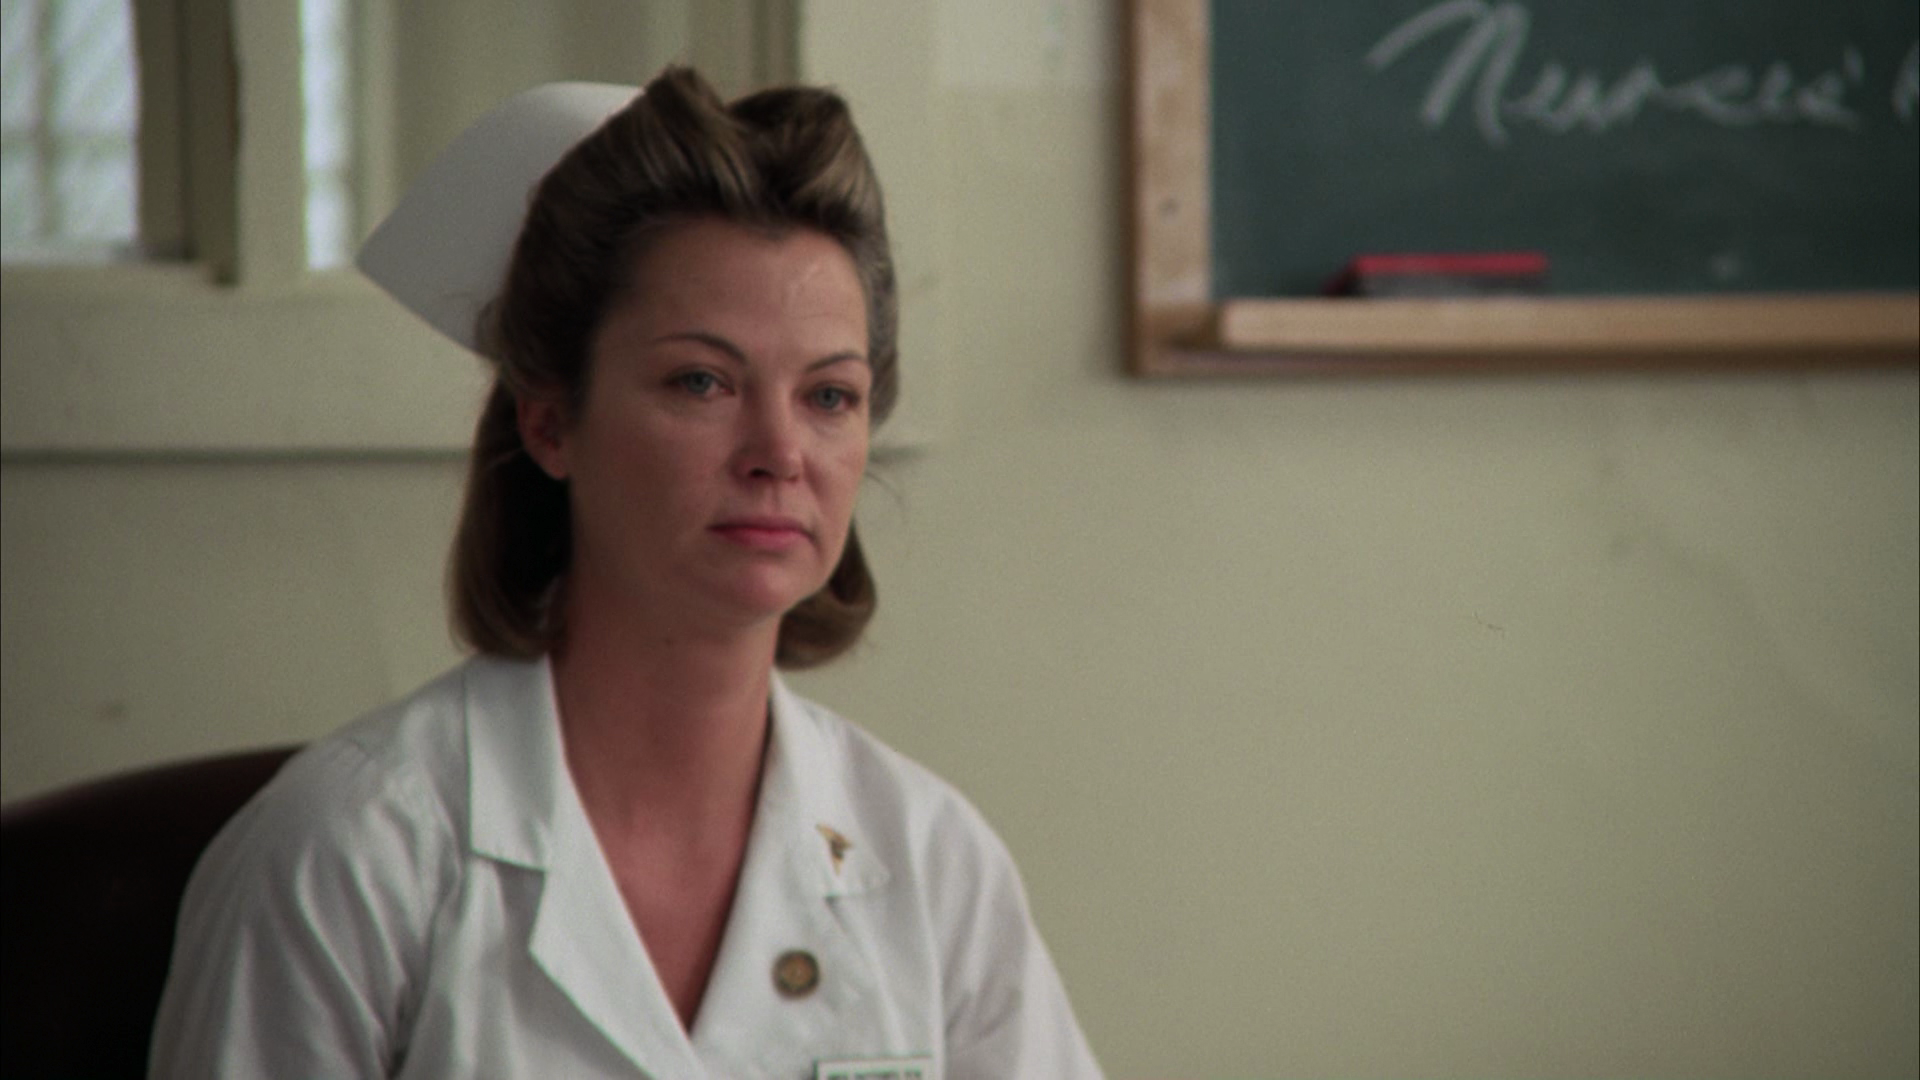 nurse ratched essay One powerful, one small, this is the base of the biblical story david and goliath the story, in which a not so strong hero takes down a strong and powerful leader, is much like mcmurphy and nurse ratched in one flew over the cuckoo's nest.